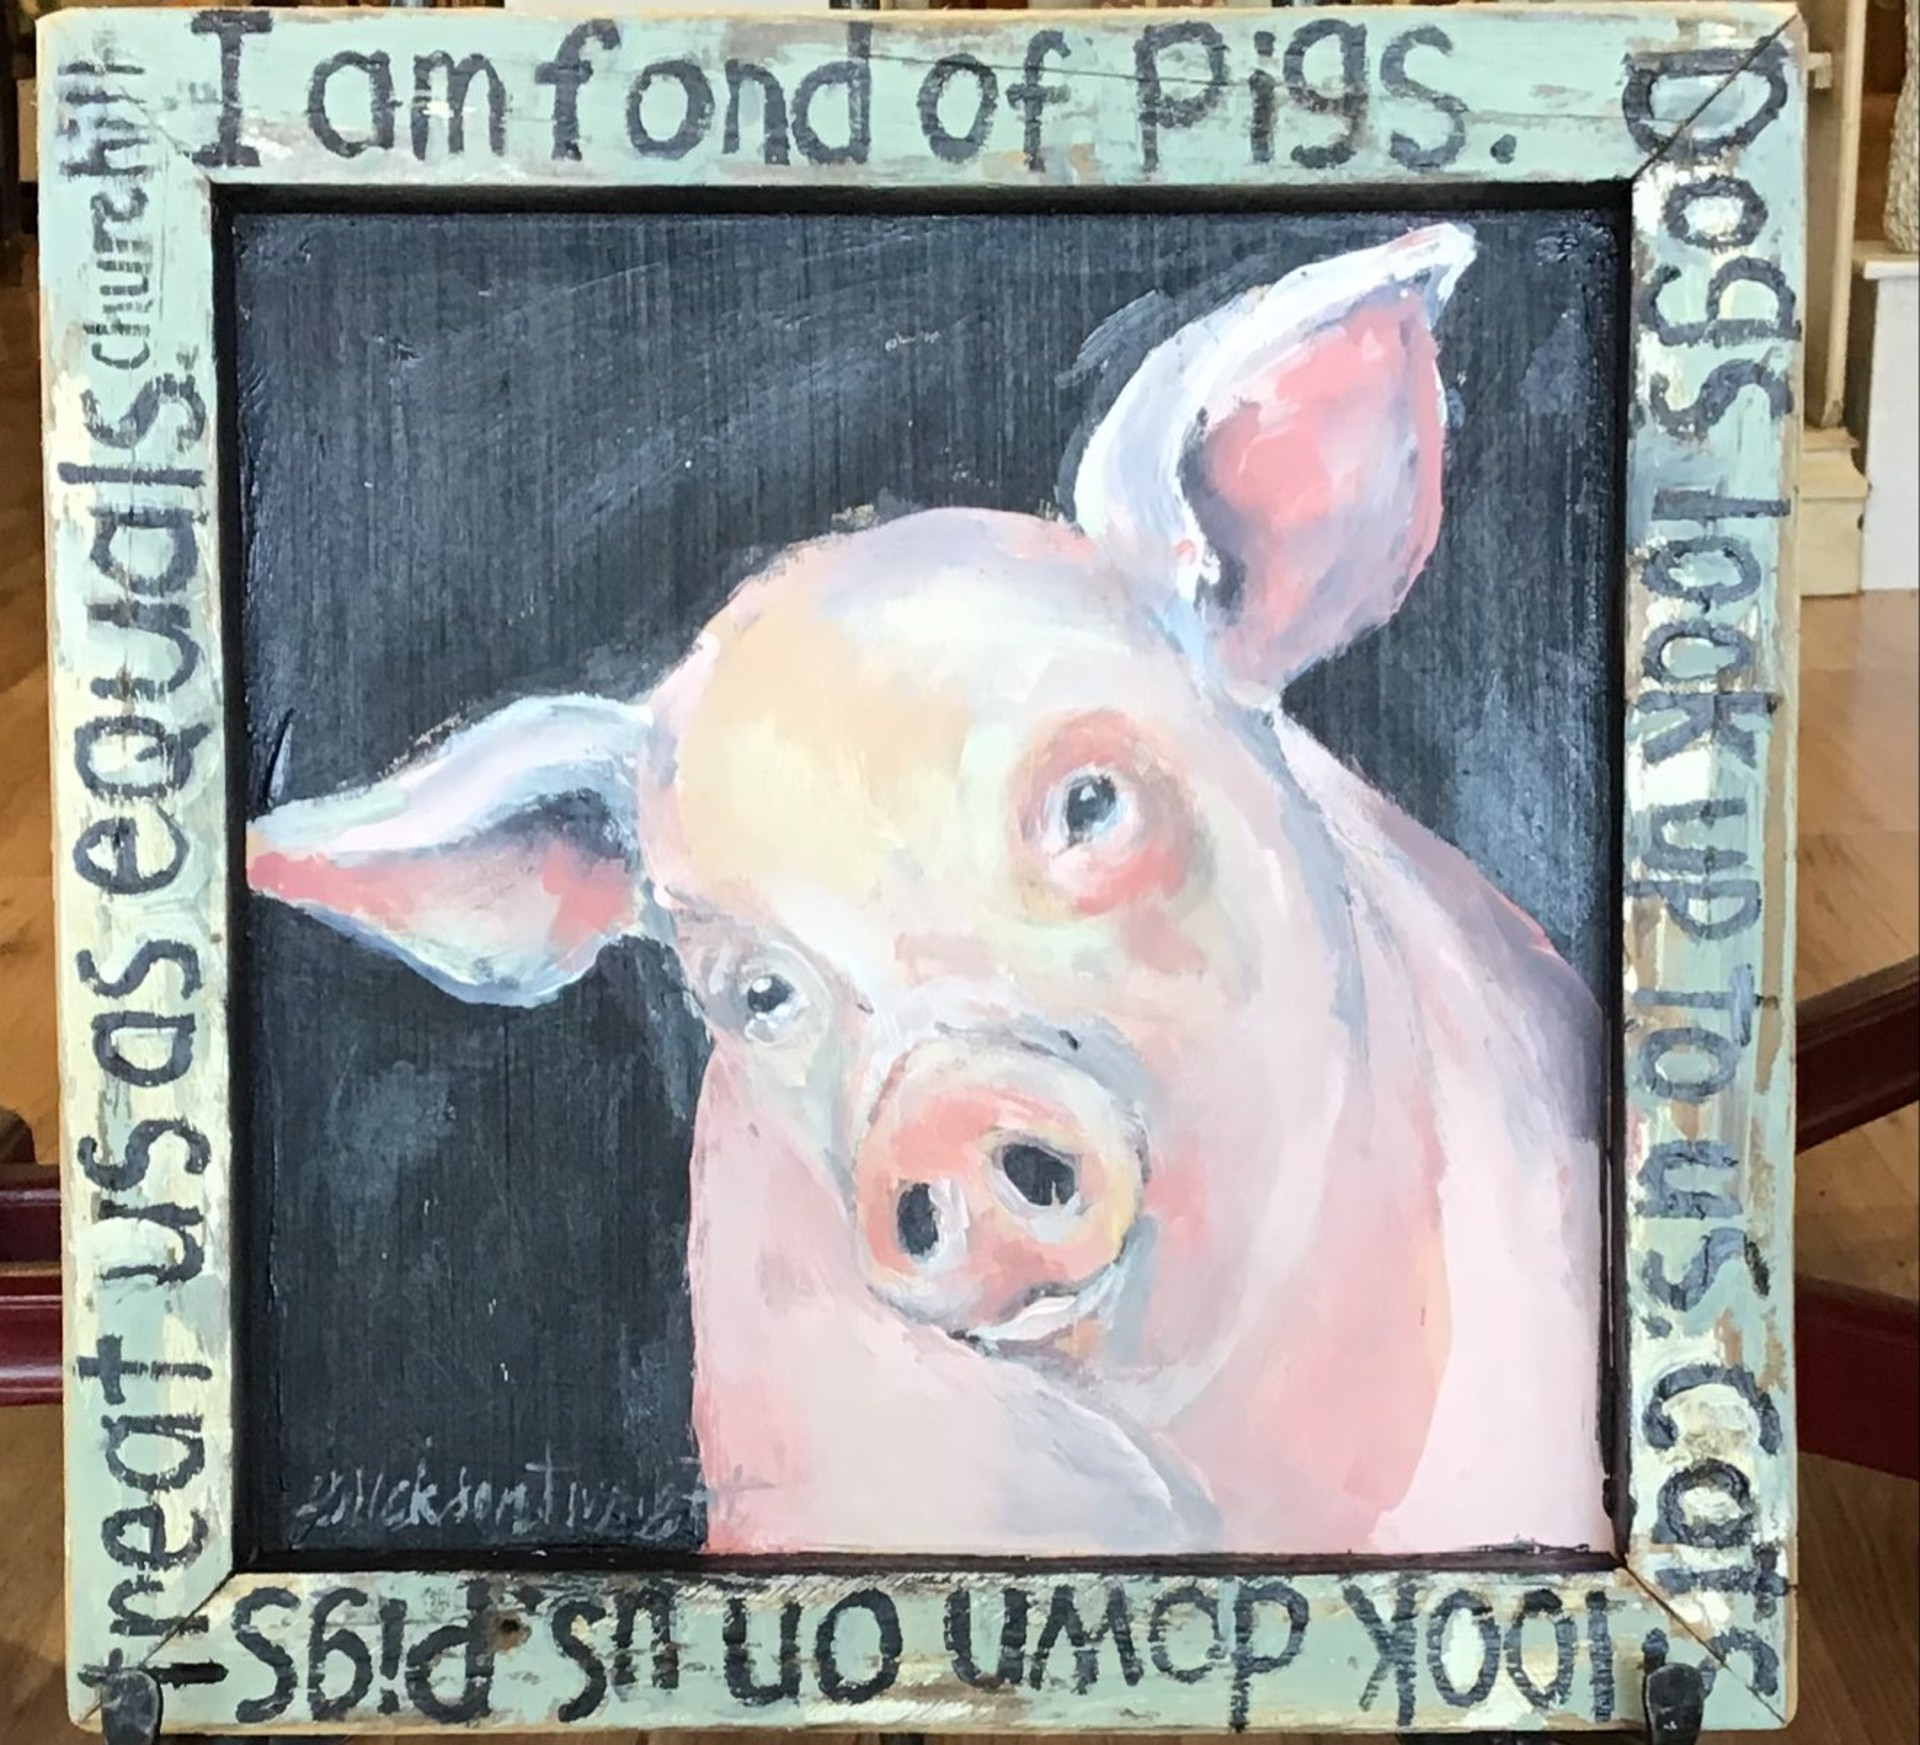 Pigs Treat Us As Equals by Sandra Erickson Wright